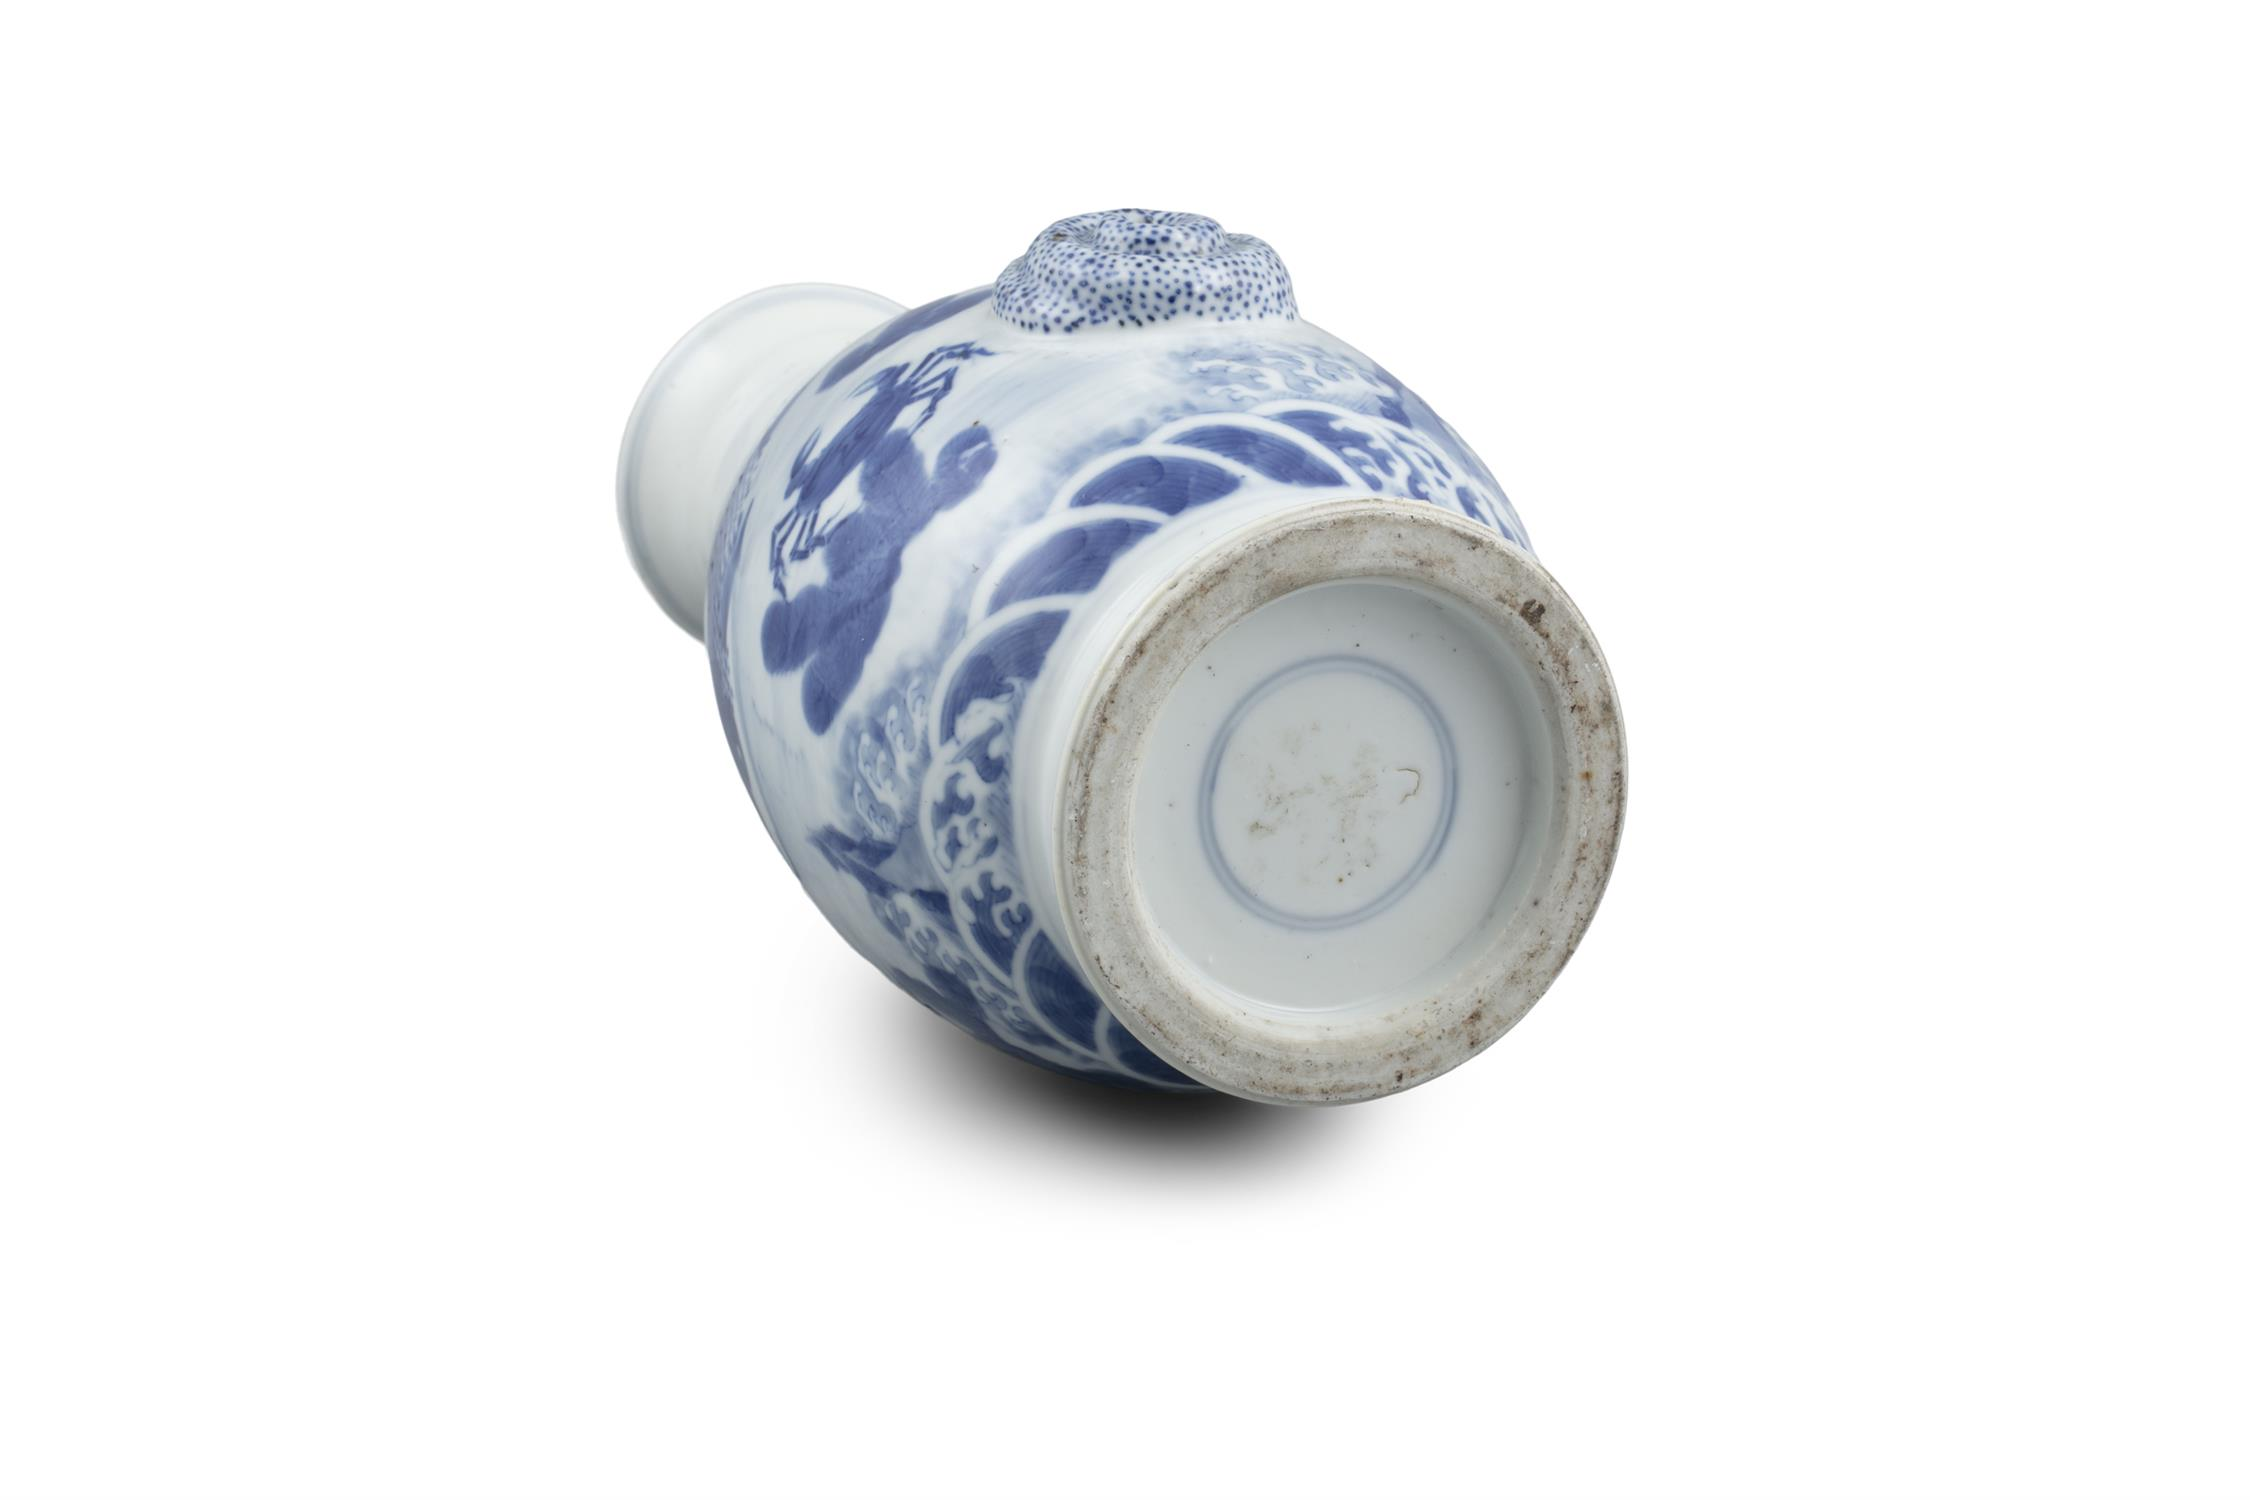 A BLUE AND WHITE 'CARPS AND CRAB' PORCELAIN BOTTLE VASE Most probably Japan, Meiji to Showa period - Image 6 of 6